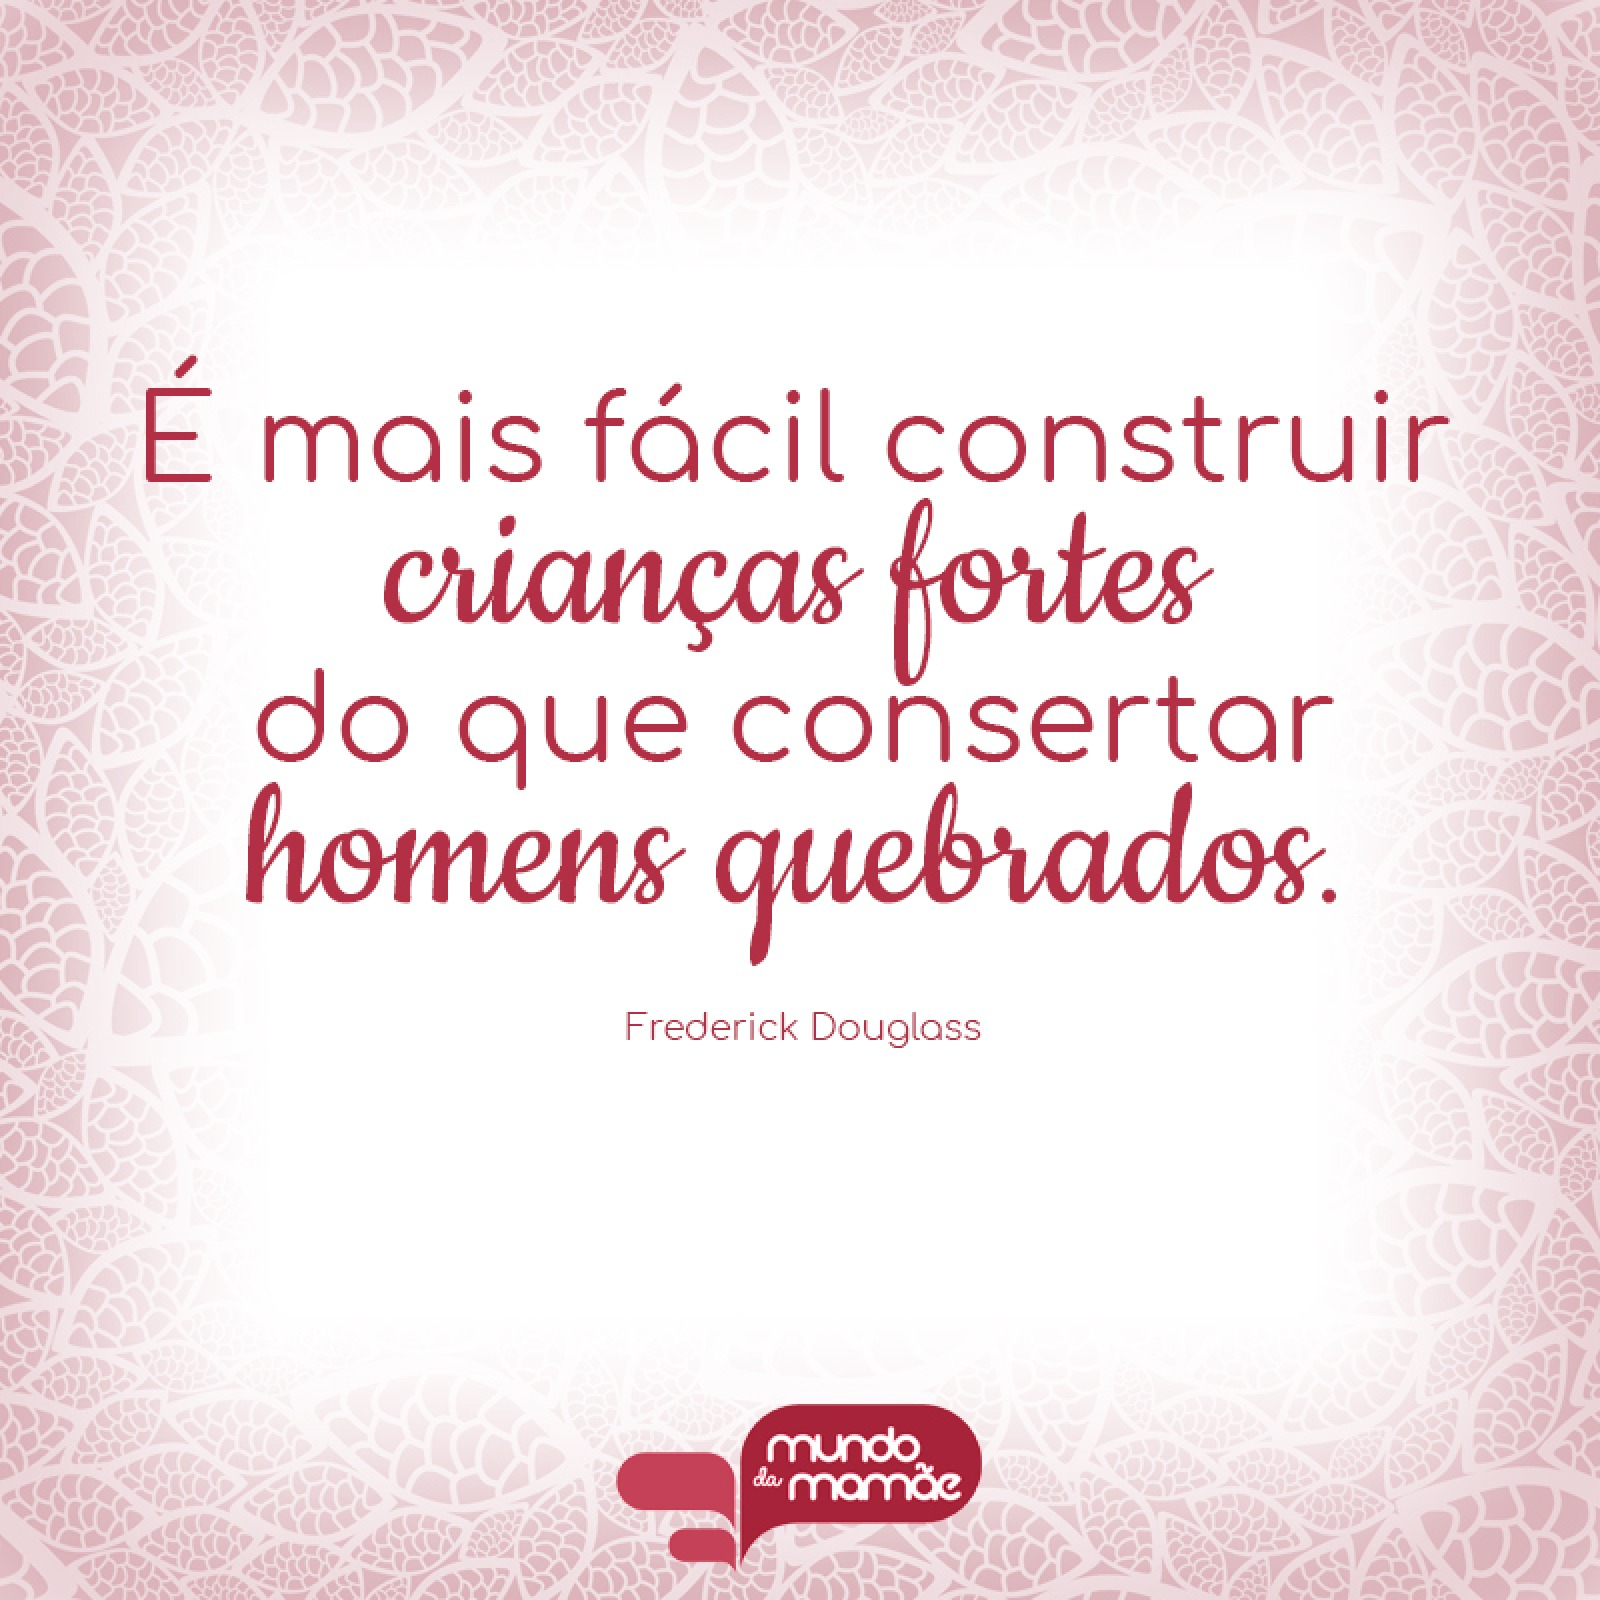 Frases que amamos